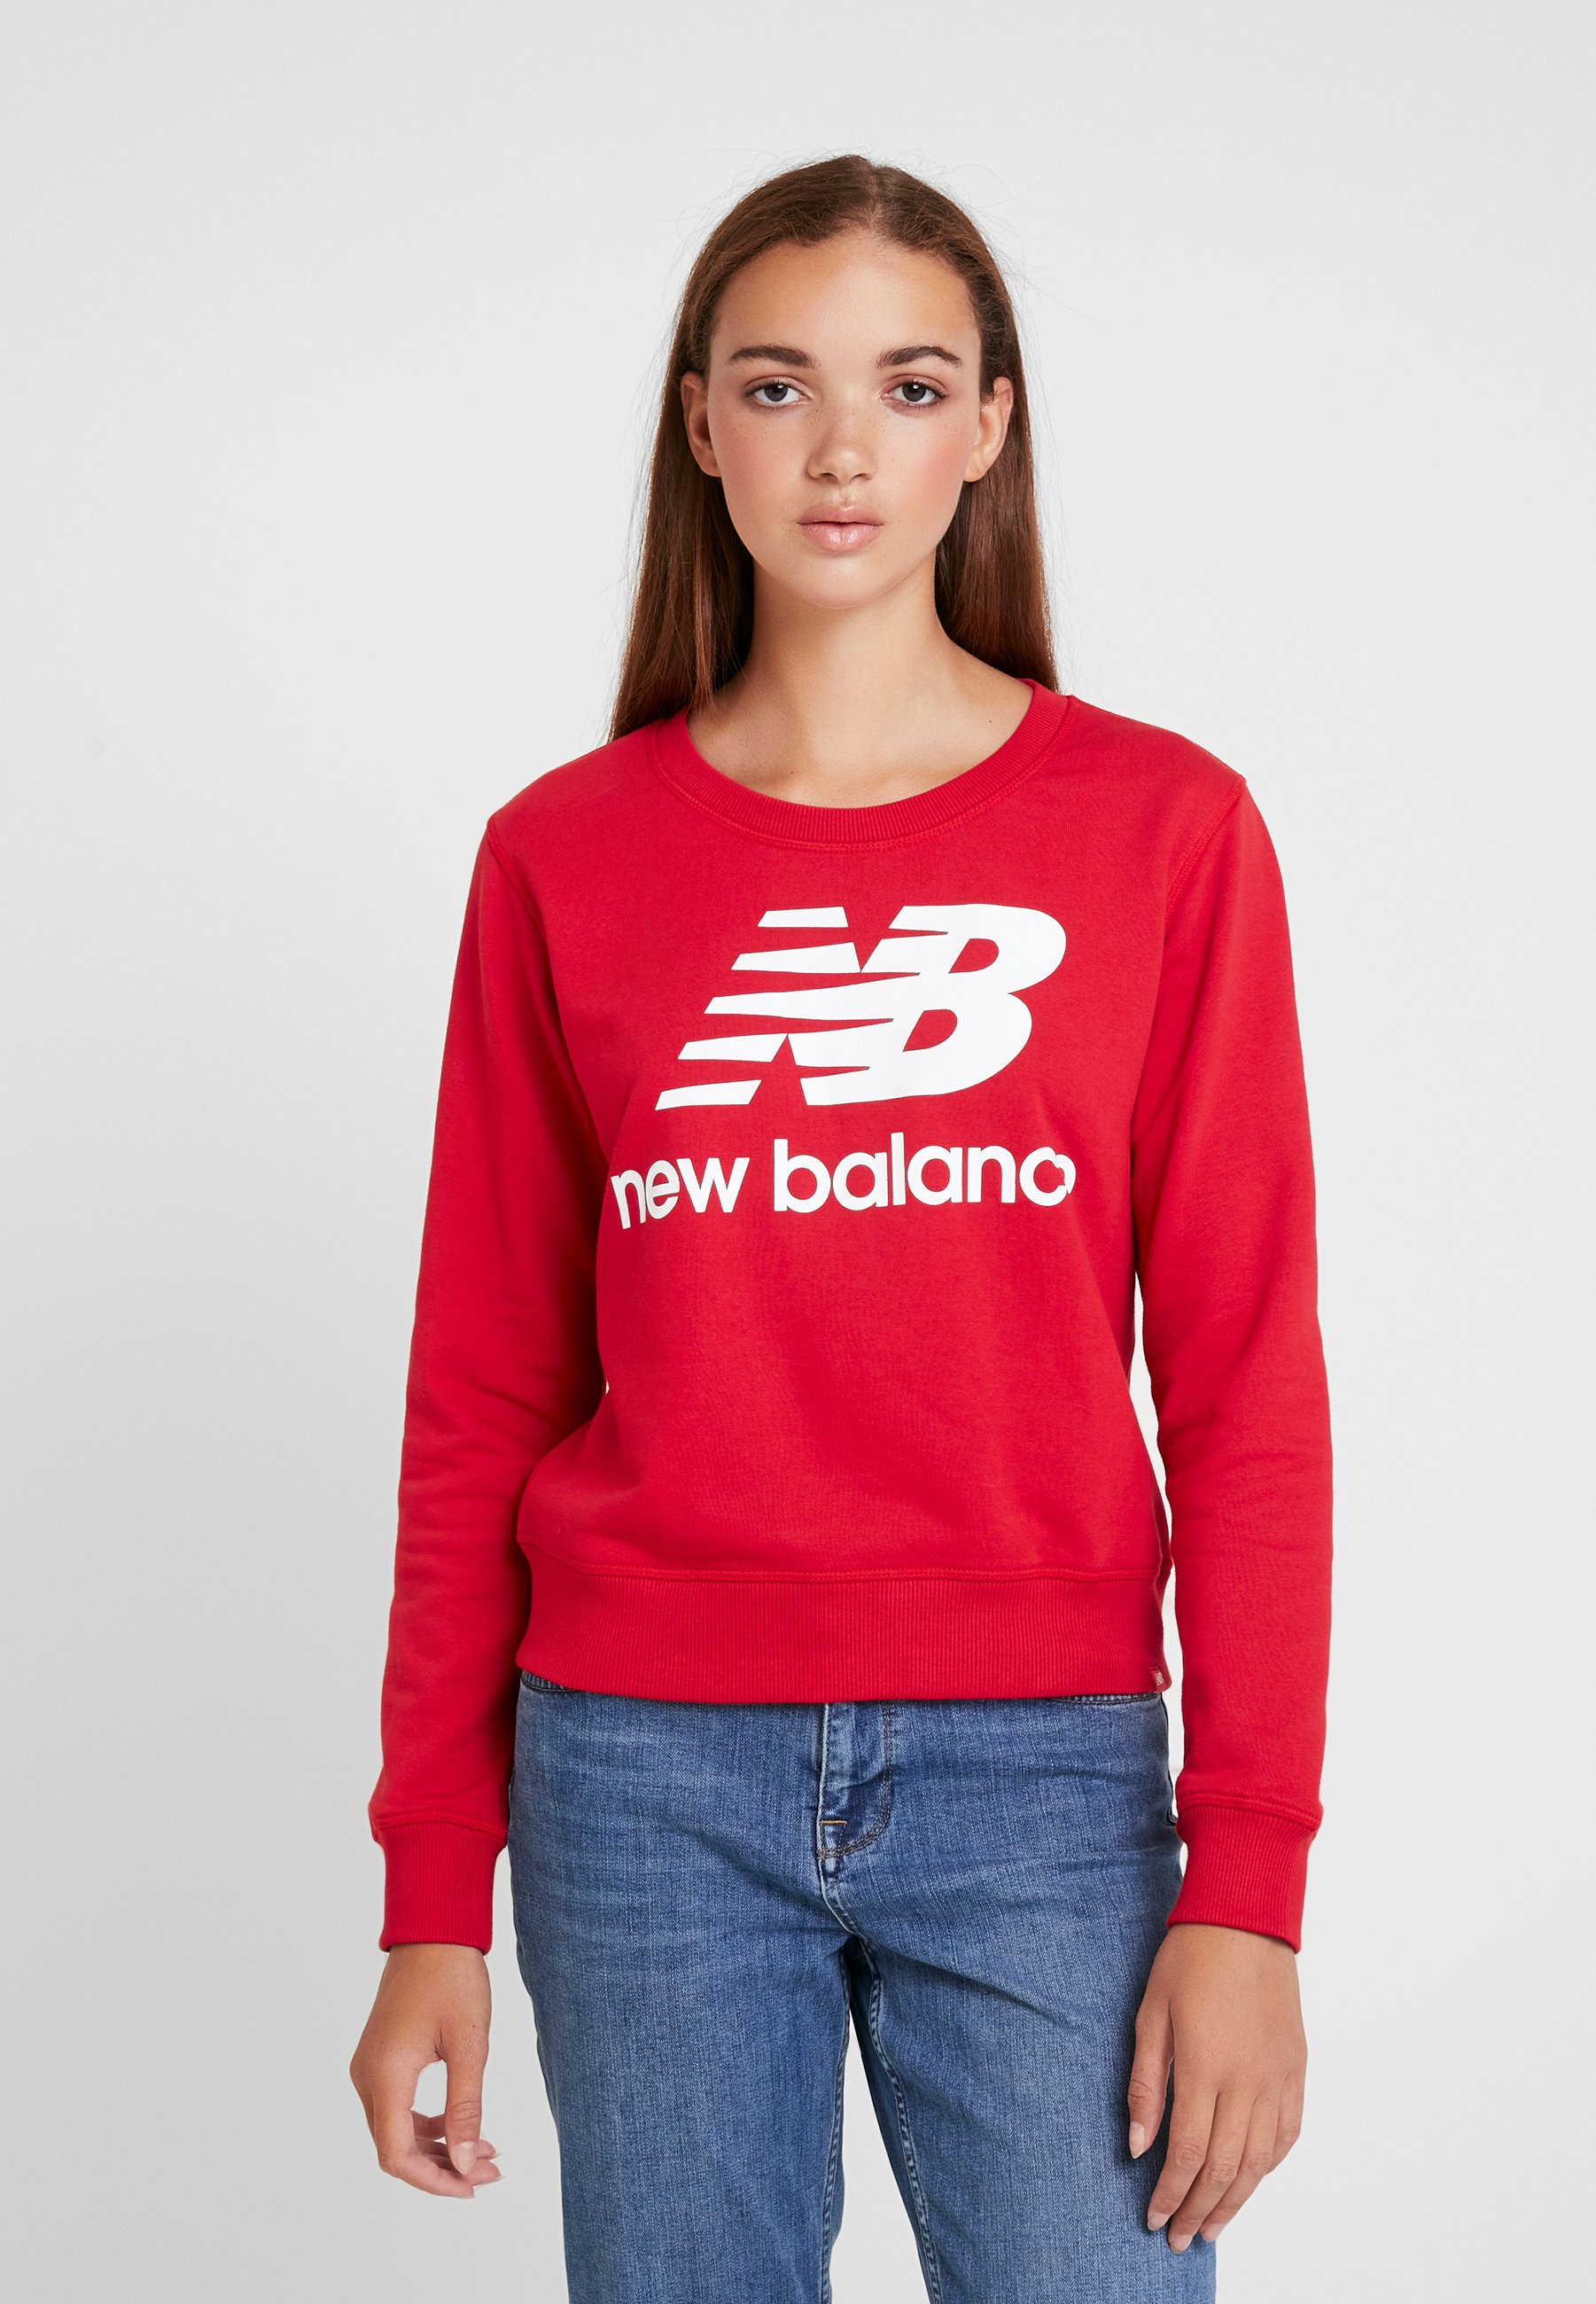 Essentials New CrewSweatshirt Red Balance Team 1cFlKJ